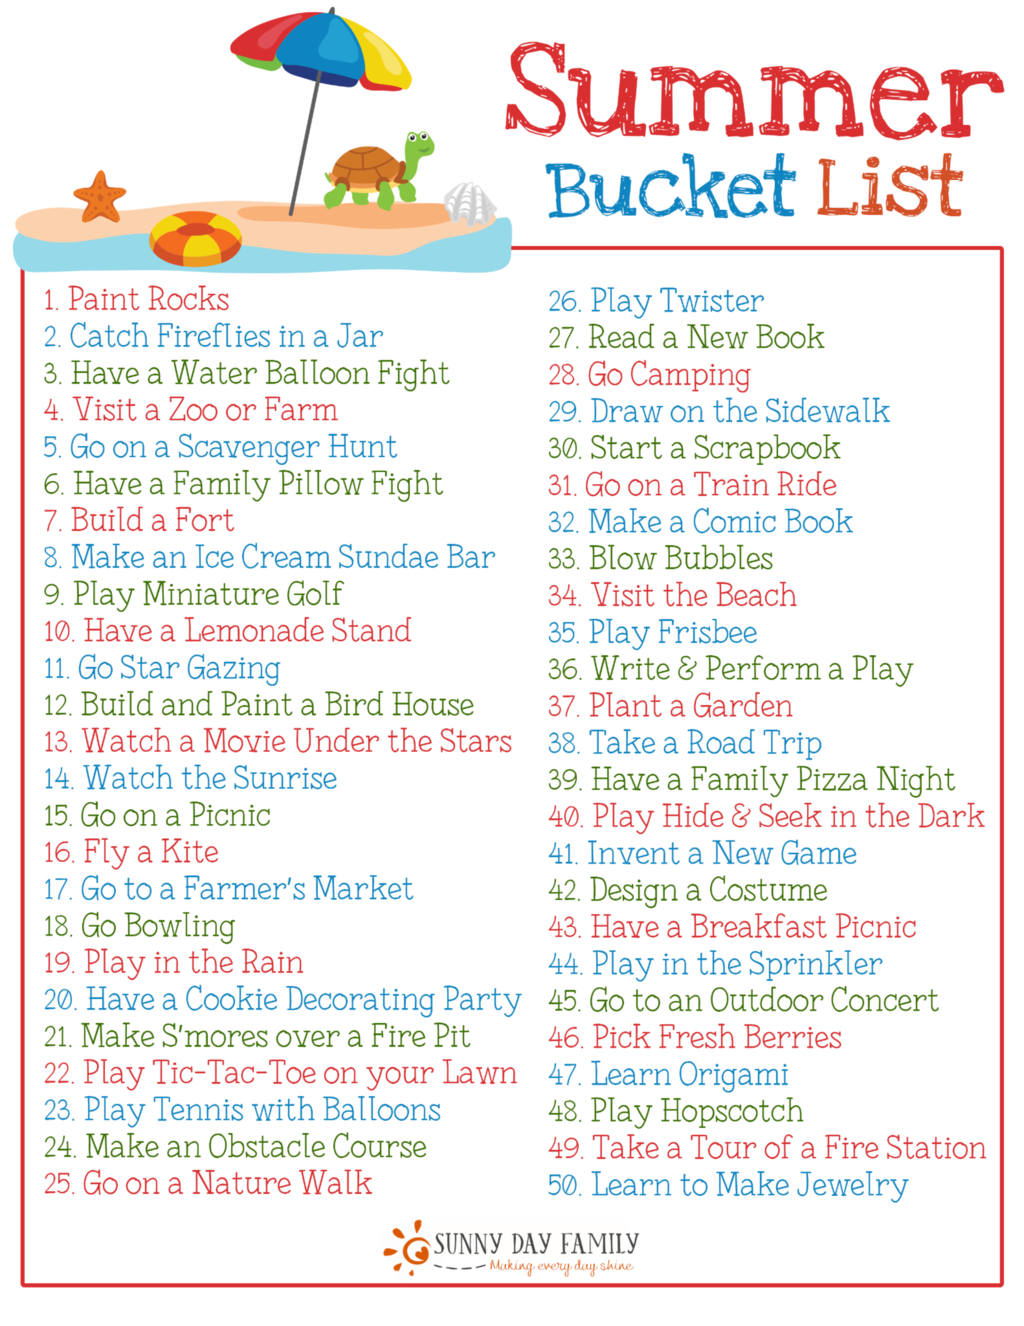 50 Summer Fun Ideas for Kids with a Free Printable Summer Bucket List #summerschedule